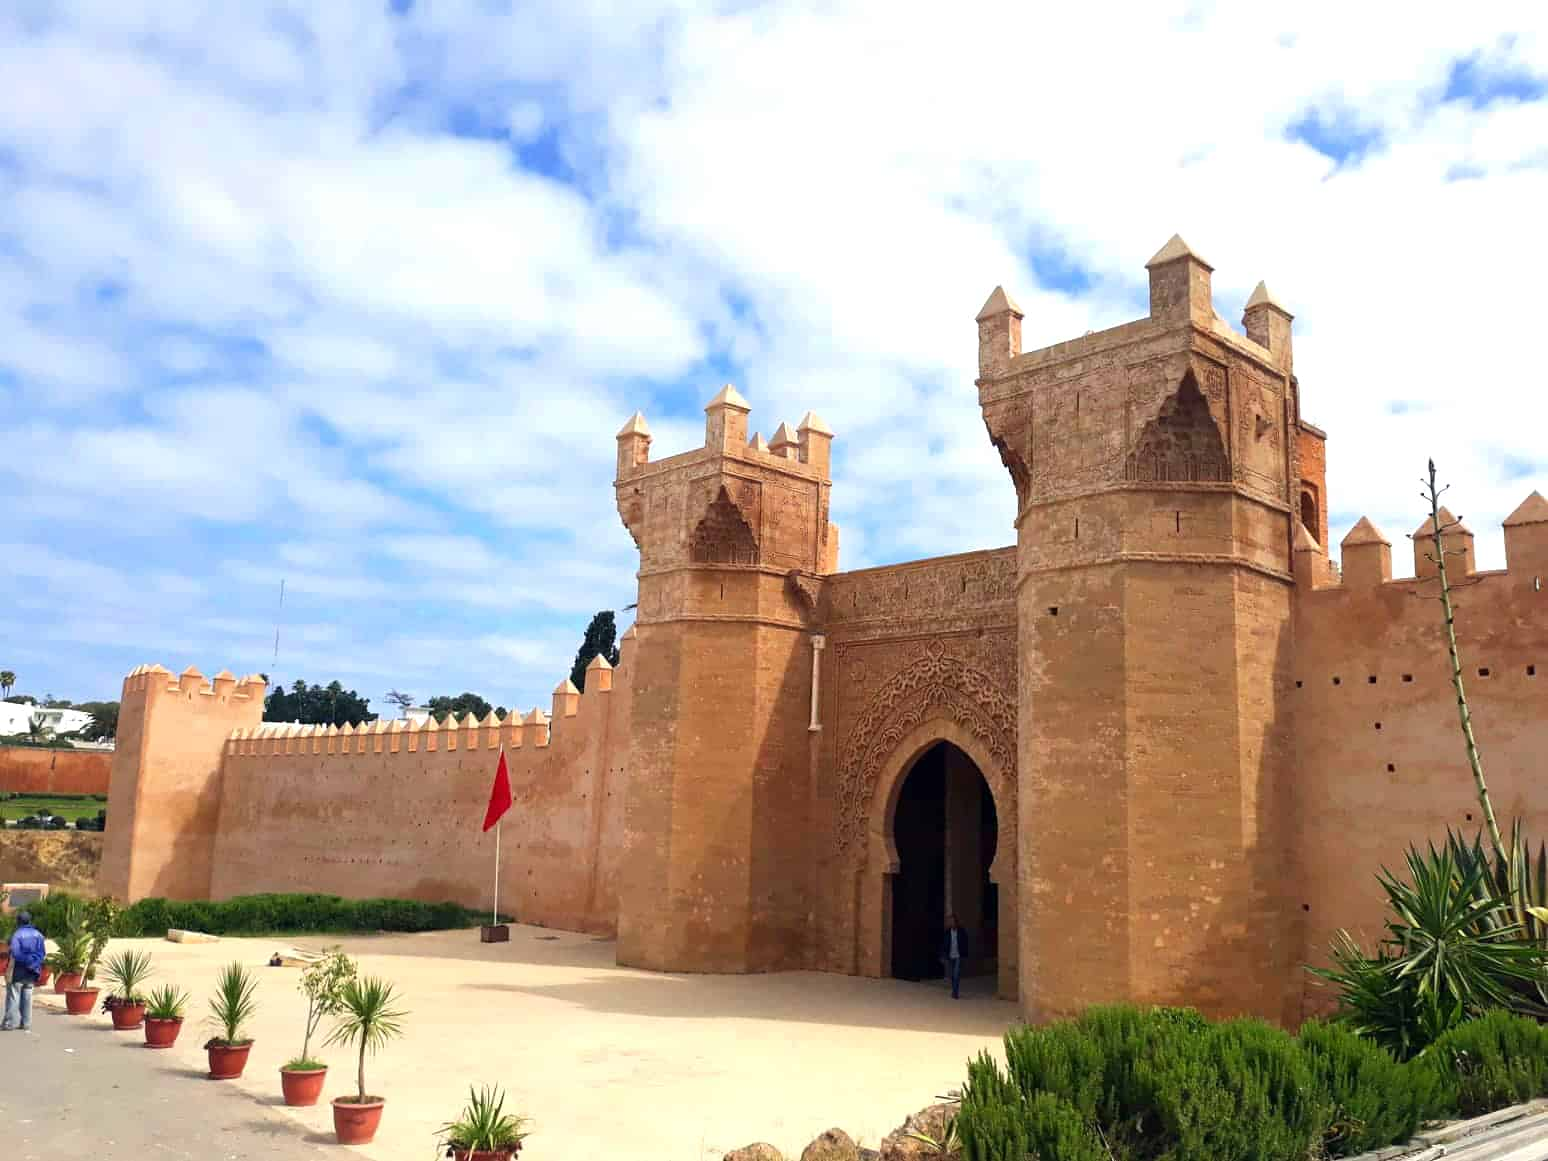 Rabat day tour 2